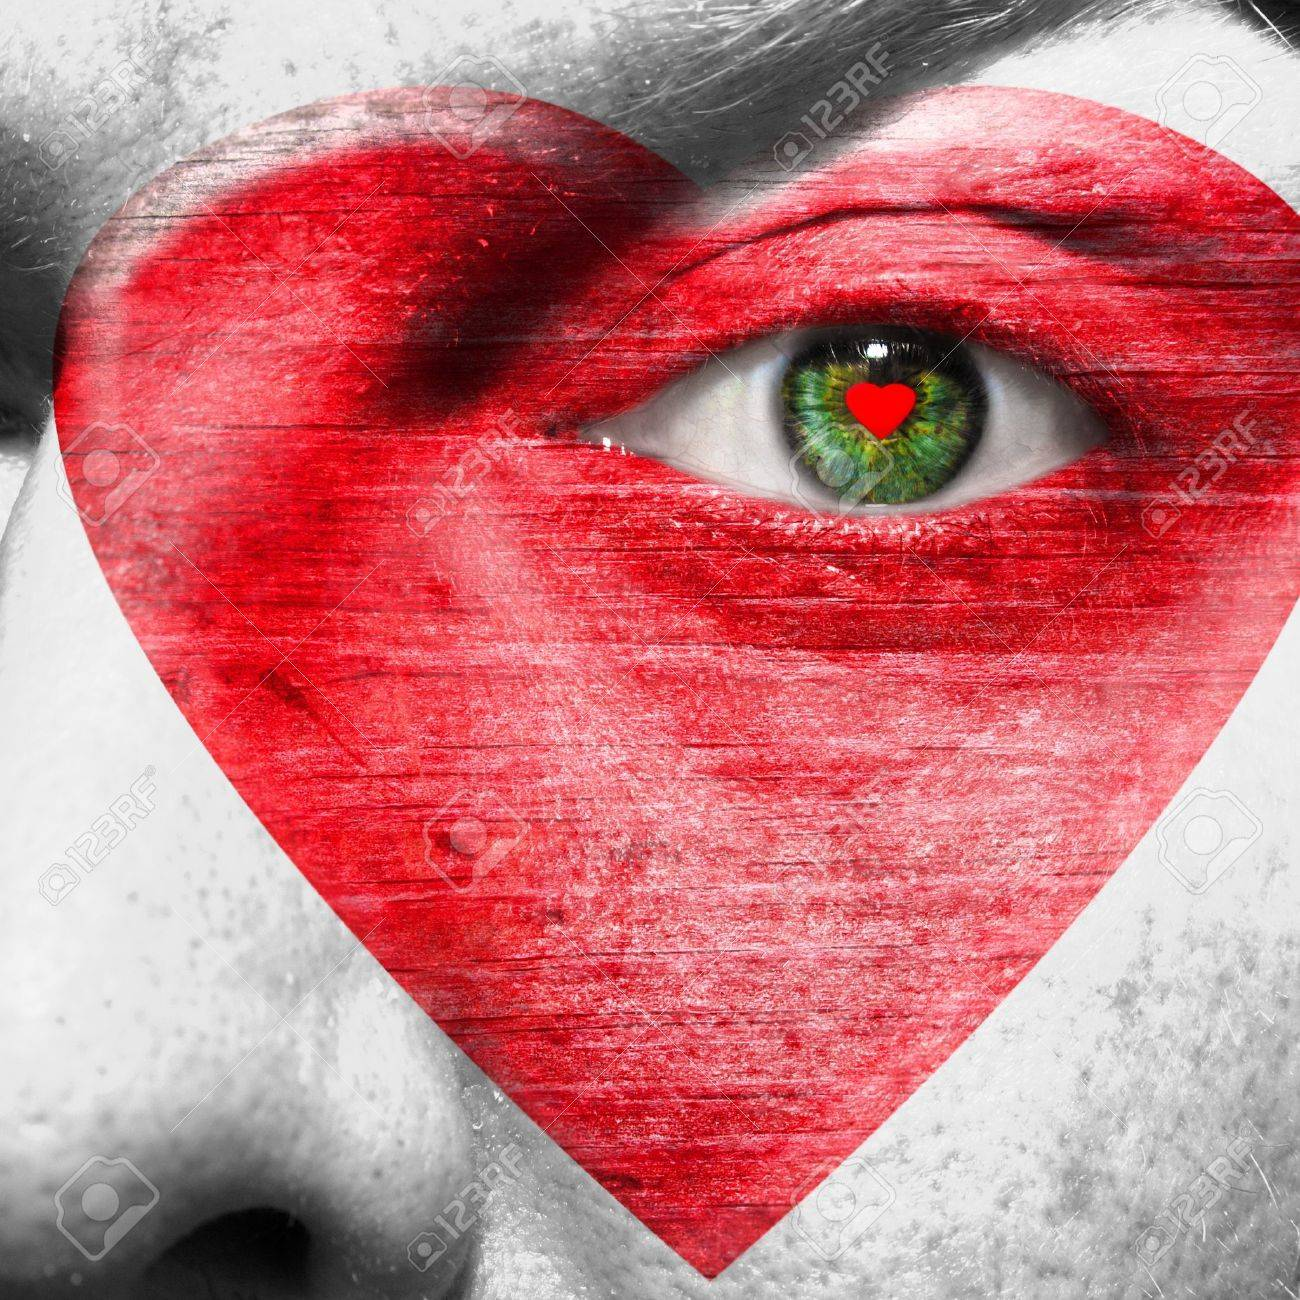 Red Heart Painted On White Face With Heart Shaped Red Pupil In